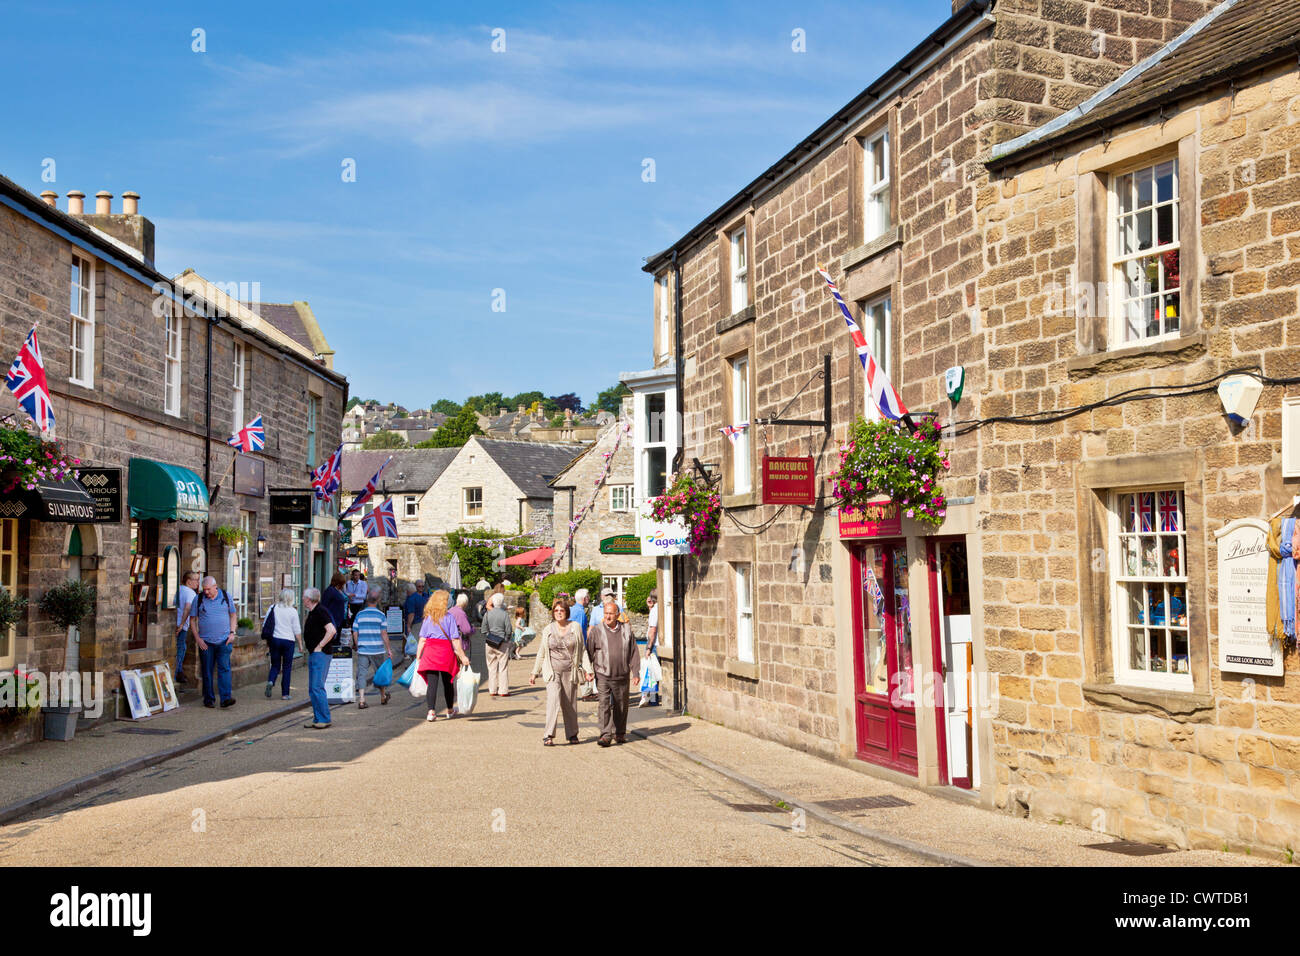 Bakewell town centre shopping street Derbyshire Peak district national park England UK GB EU Europe - Stock Image